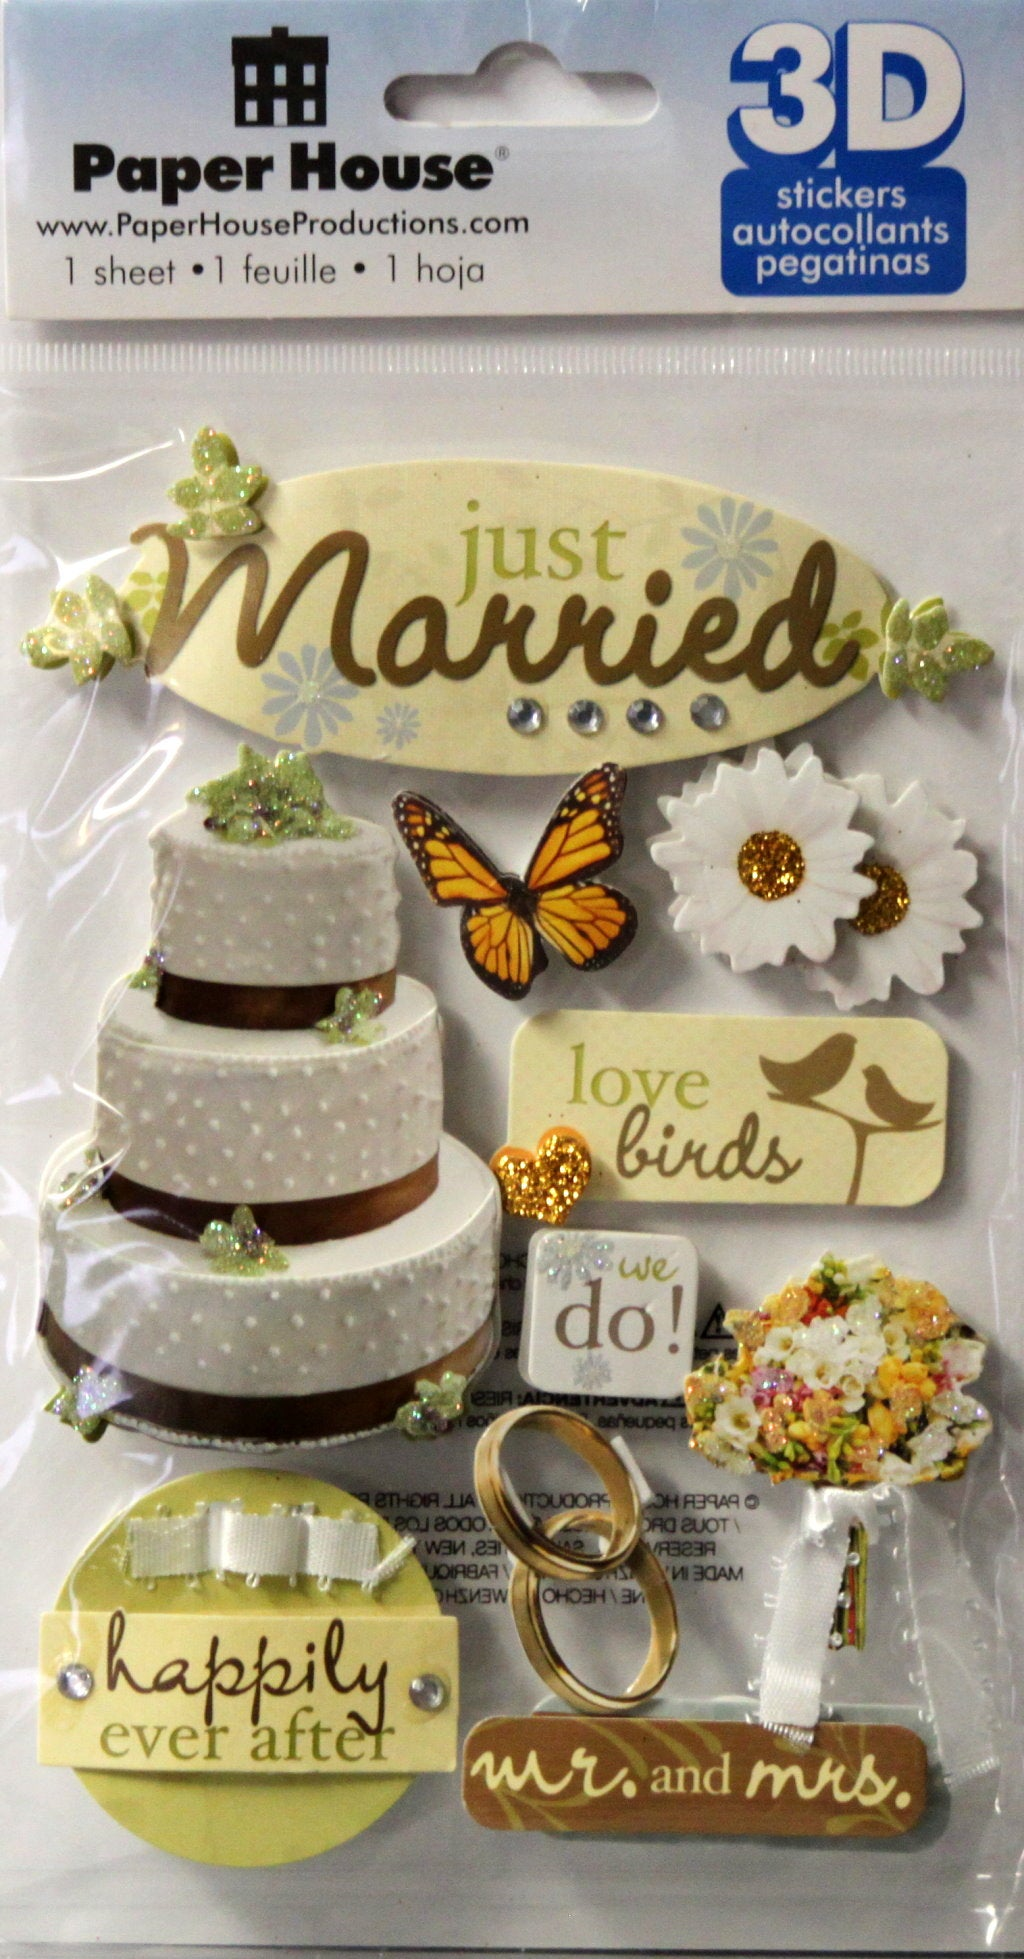 Paper House 3D Dimensional Just Married Stickers